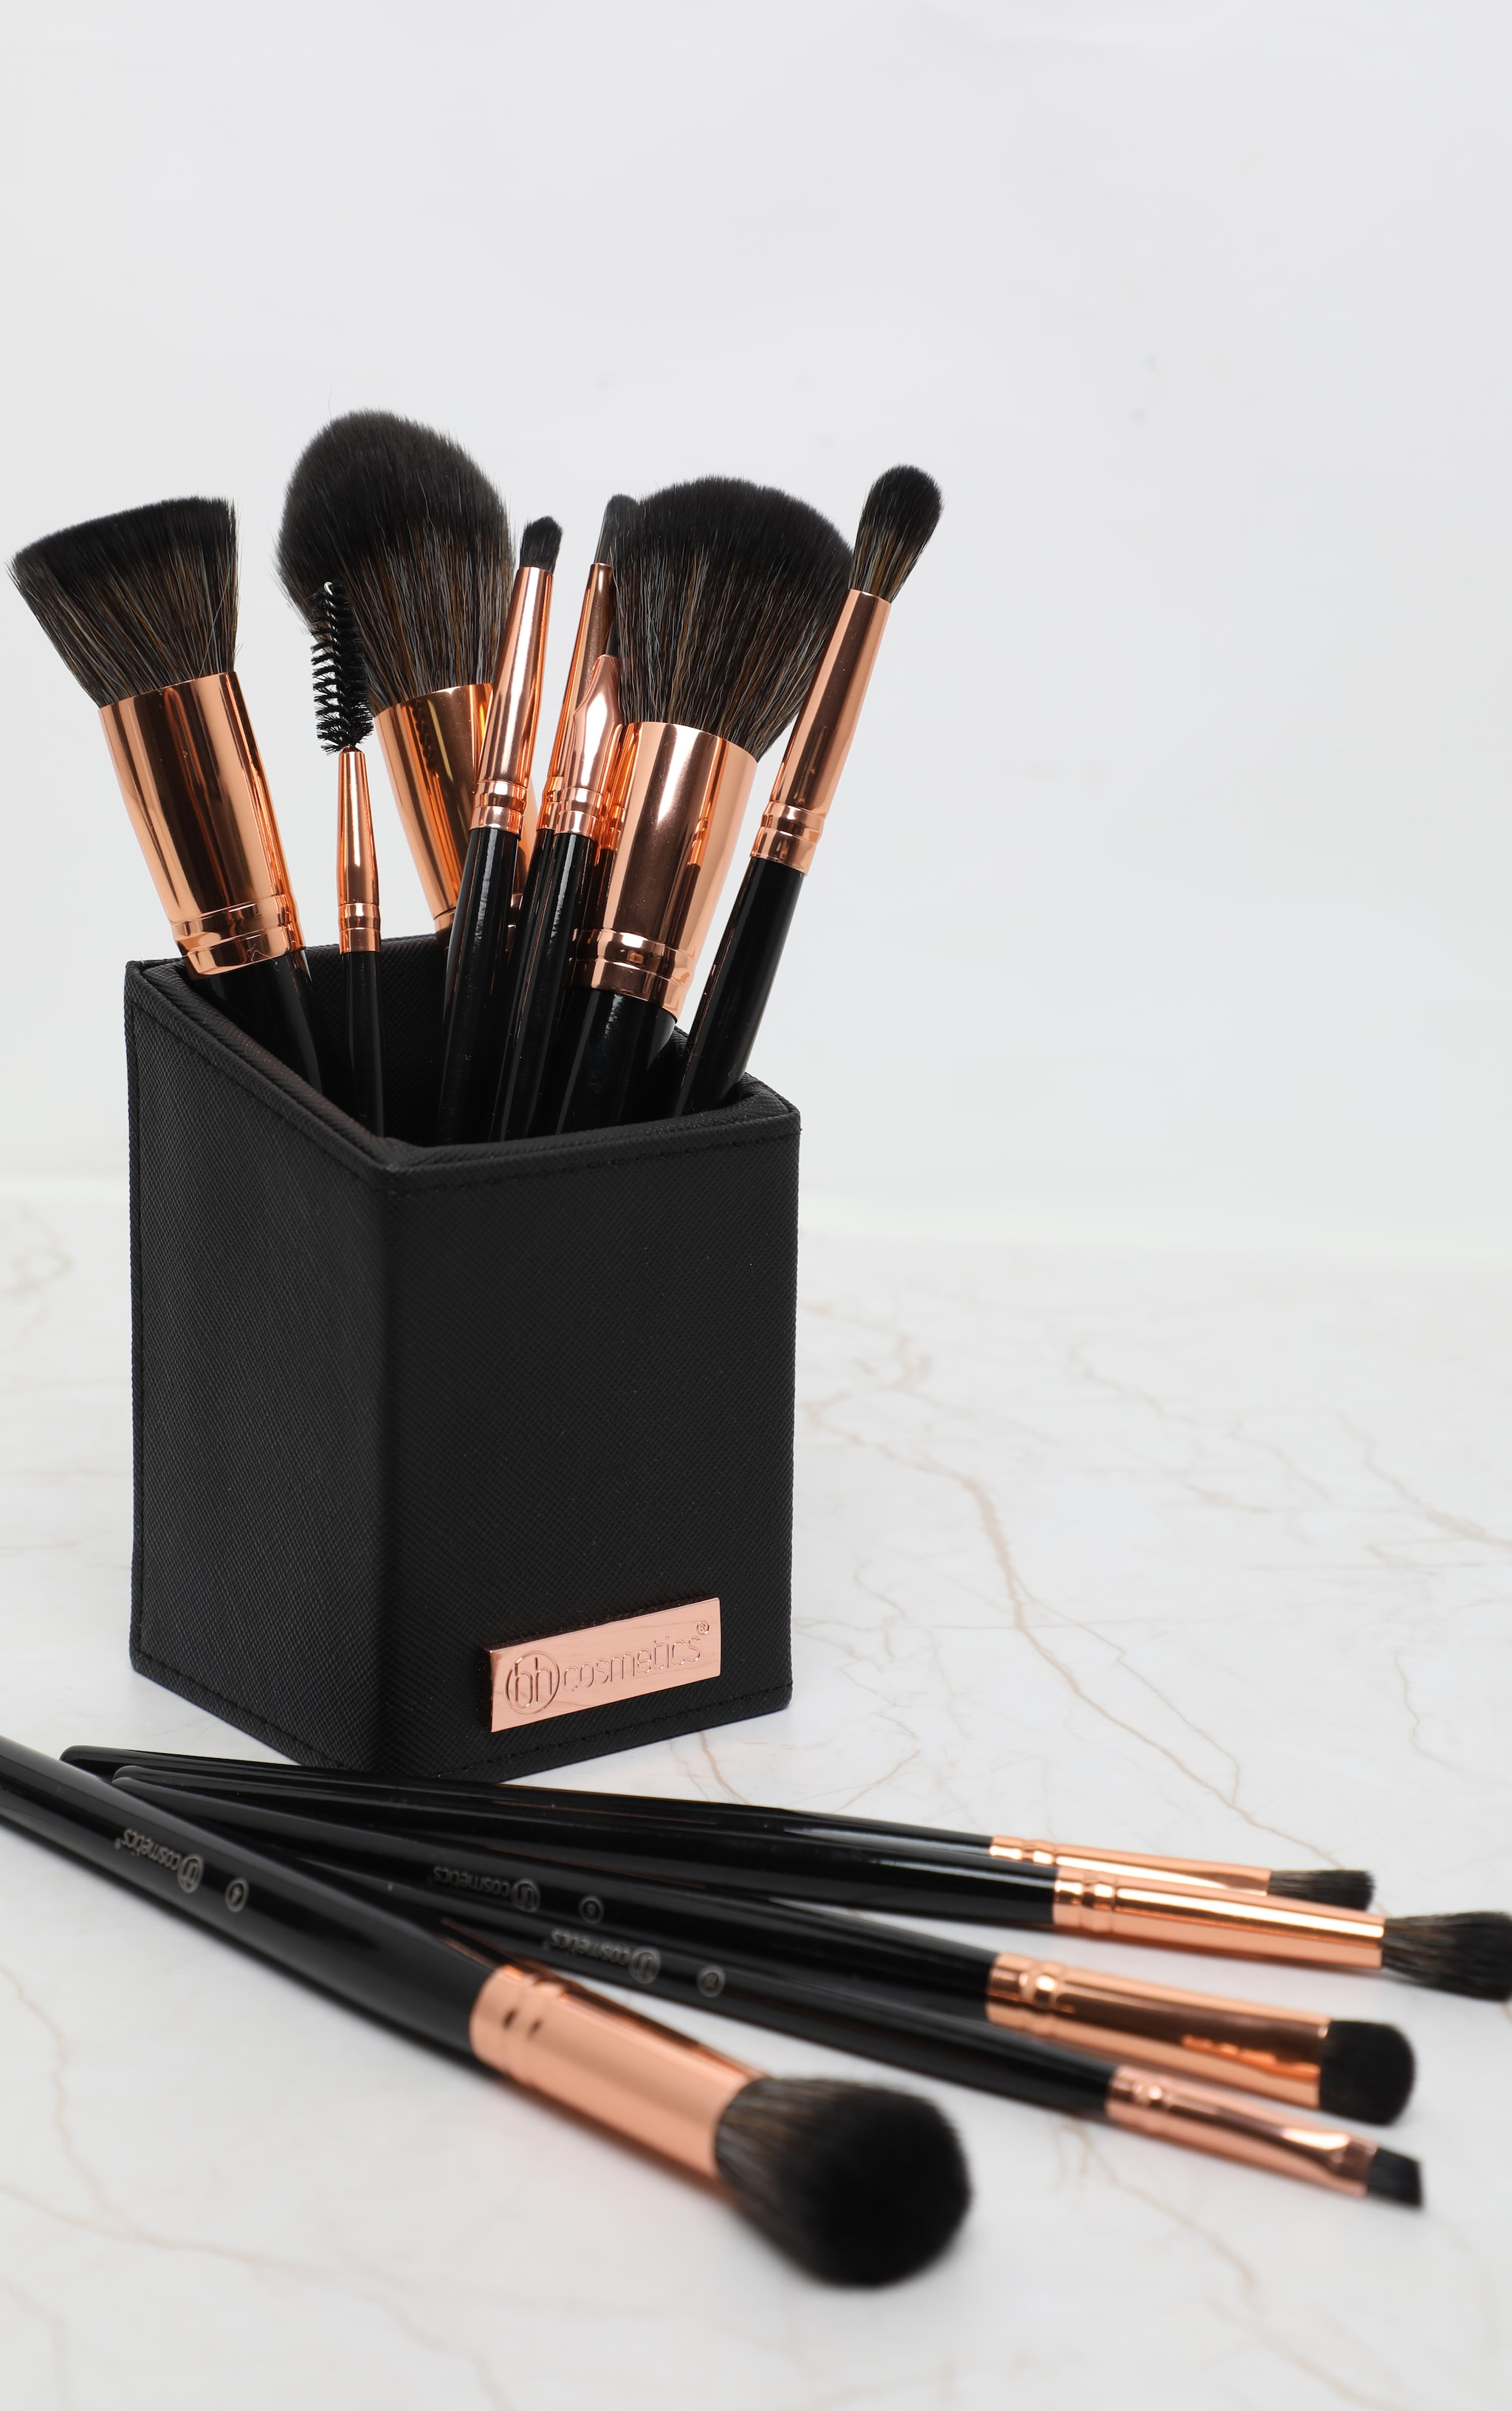 BH Cosmetics Signature Rose Gold 13 Piece Brush Set 2